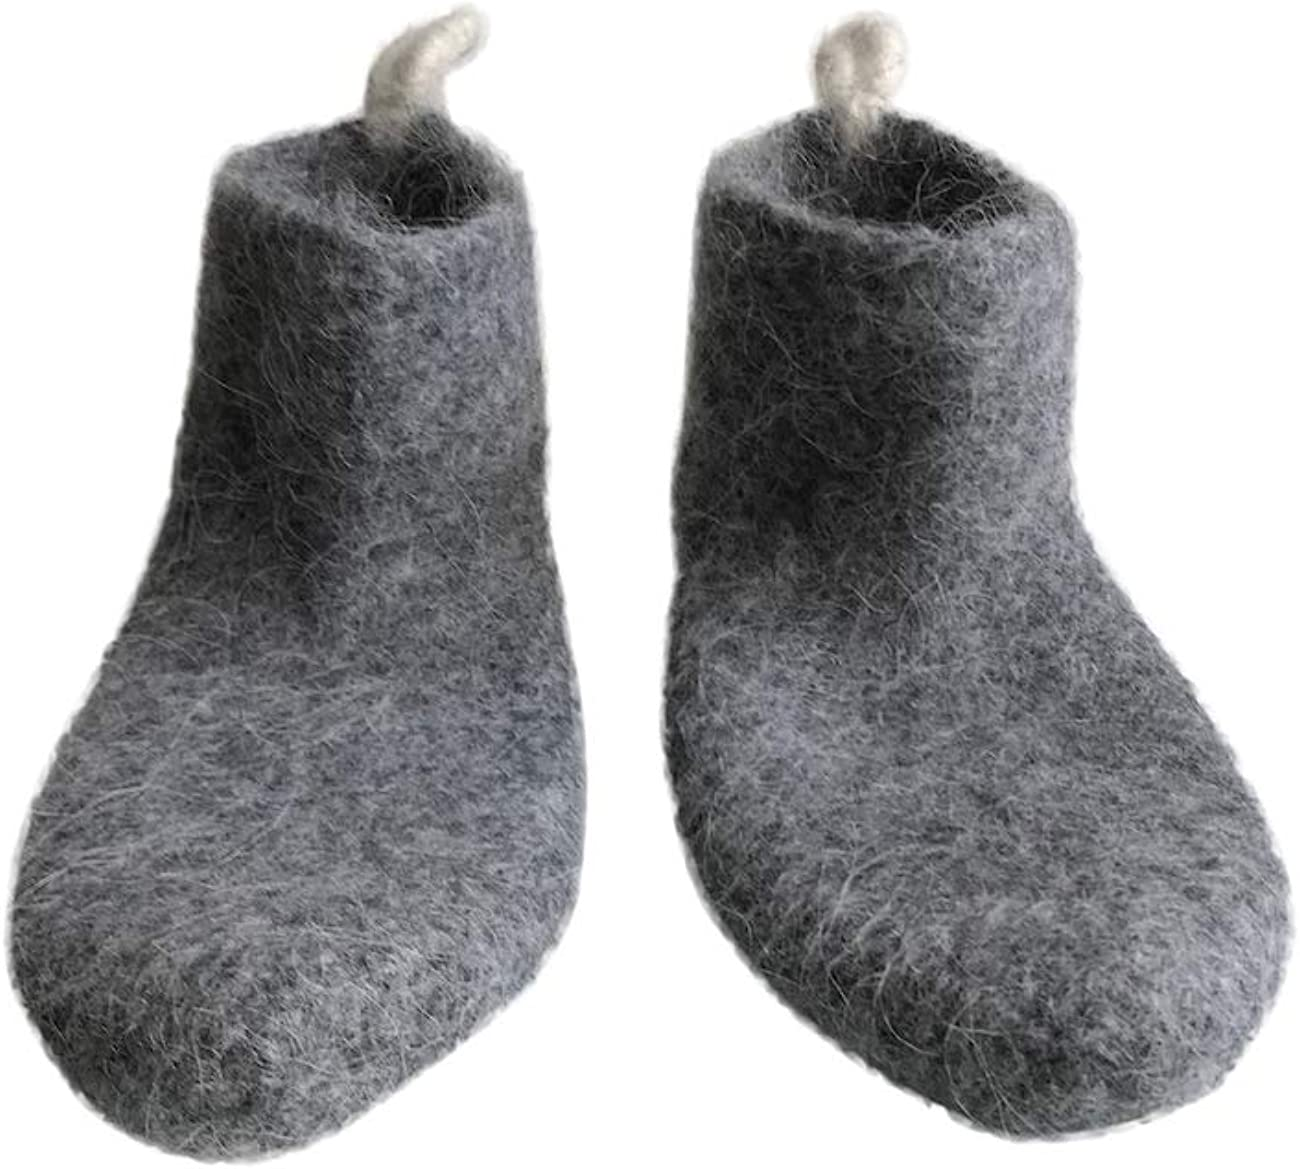 Kosy Sheep Warm ストアー 低価格化 Cozy House Slippers Men Women Socks Iceland for